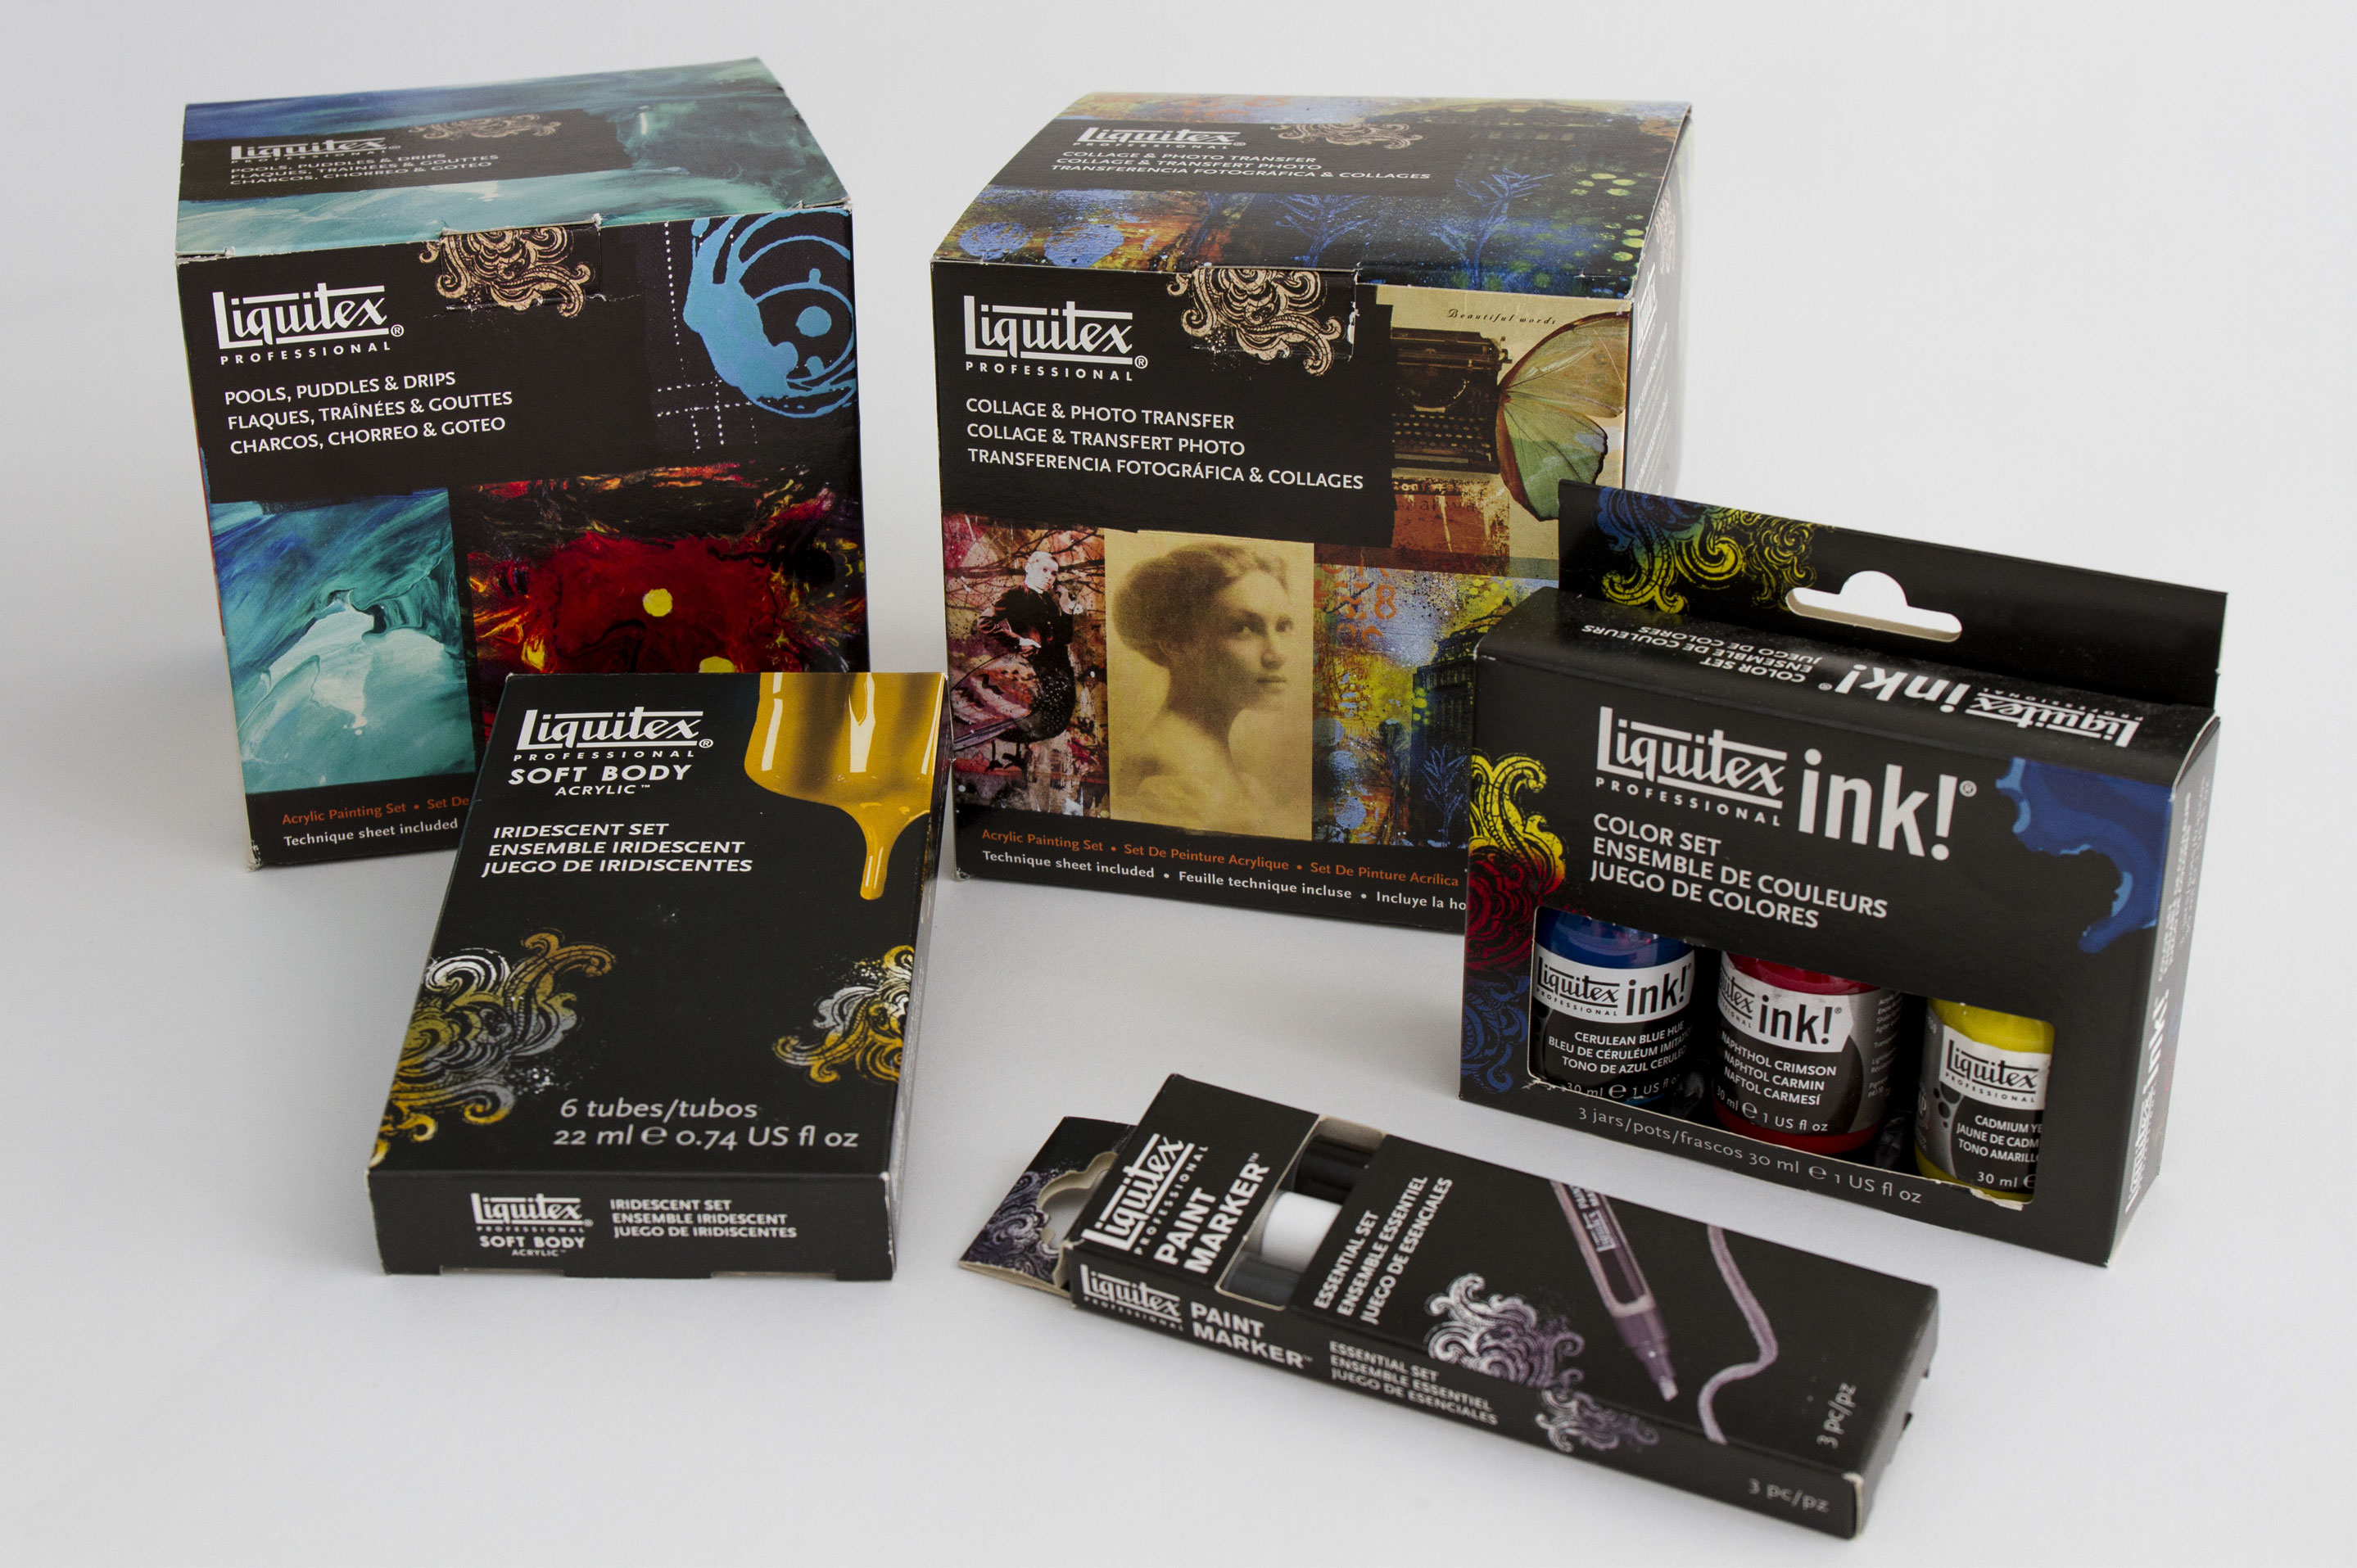 Liquitex packaging